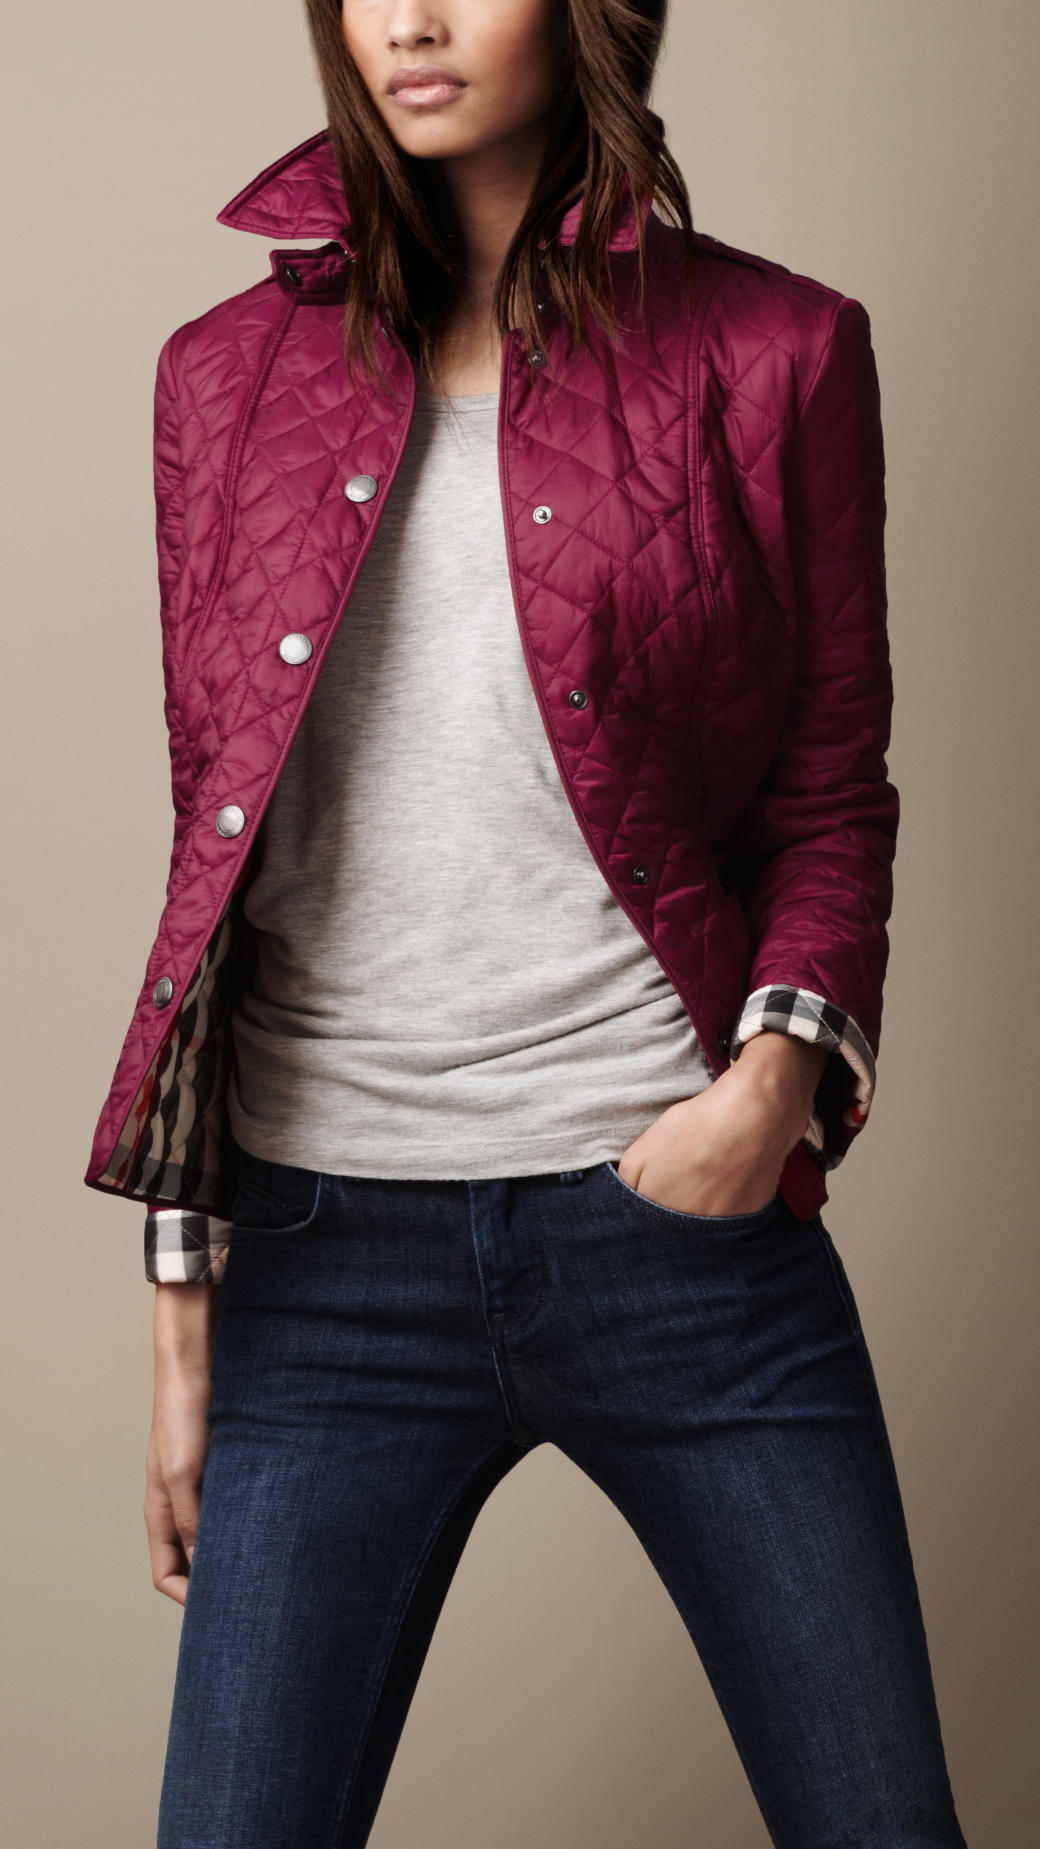 Burberry Diamond Quilted Jacket in Purple | Lyst : burberry purple quilted jacket - Adamdwight.com